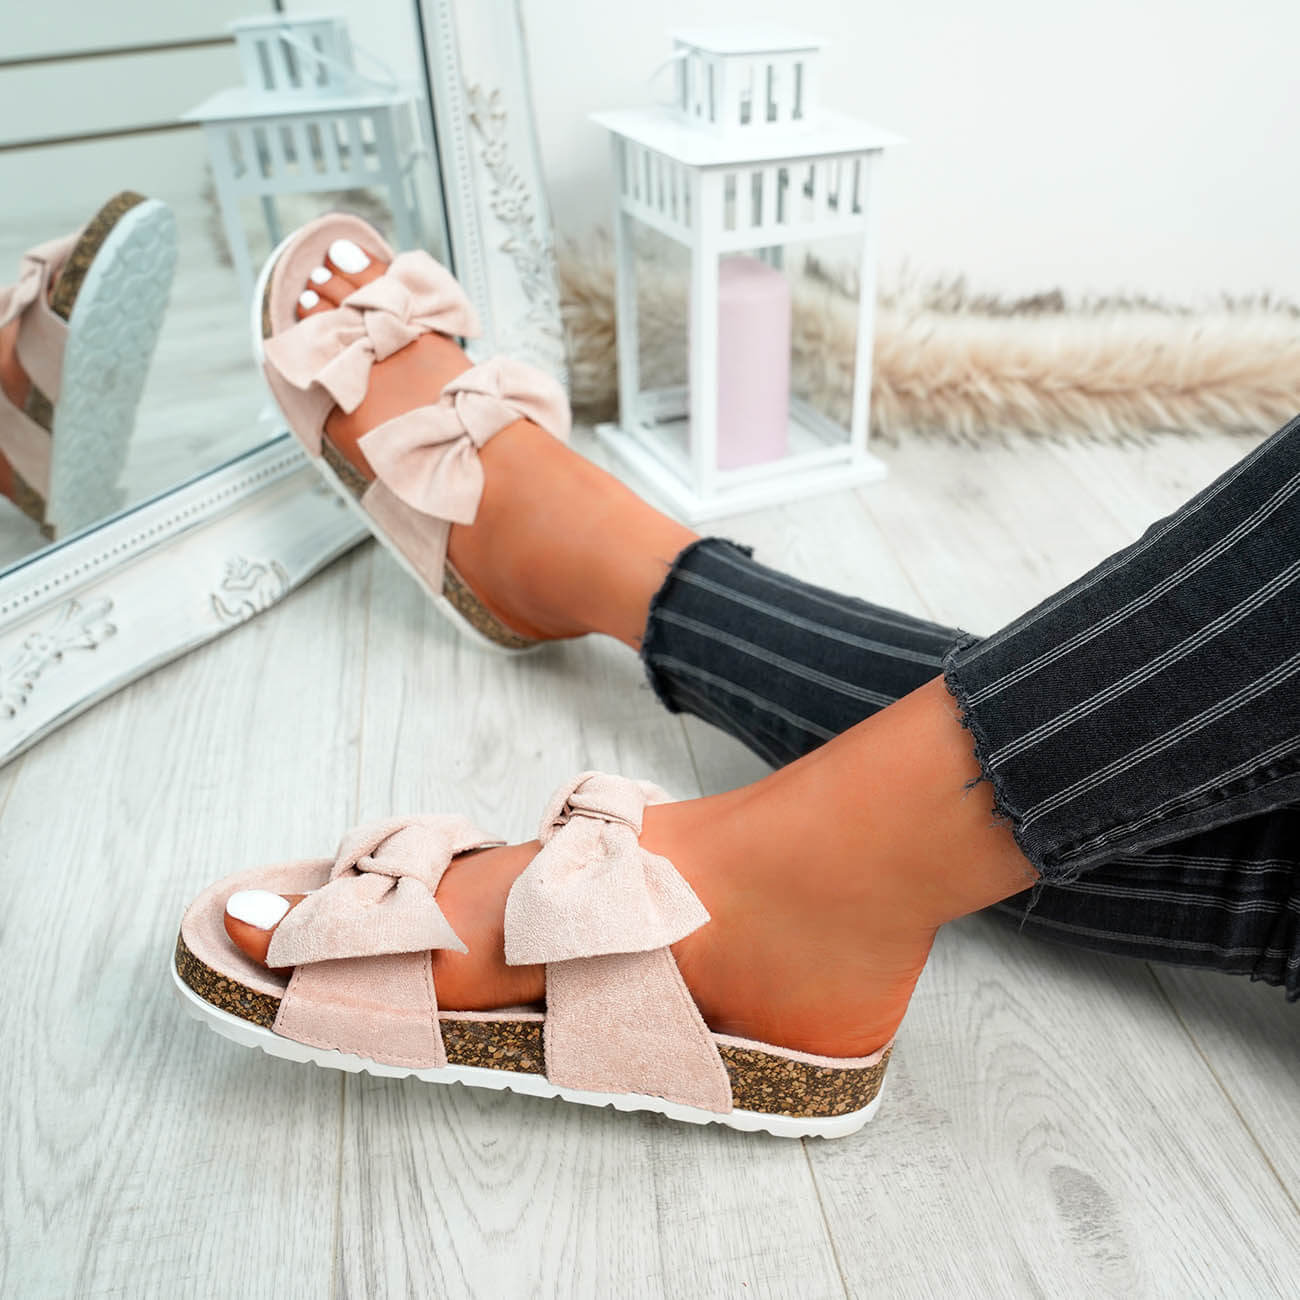 WOMENS-LADIES-PEEP-TOE-SLIP-ON-DOUBLE-BOW-FLAT-SANDALS-PARTY-CLUB-SUMMER-SHOES thumbnail 38